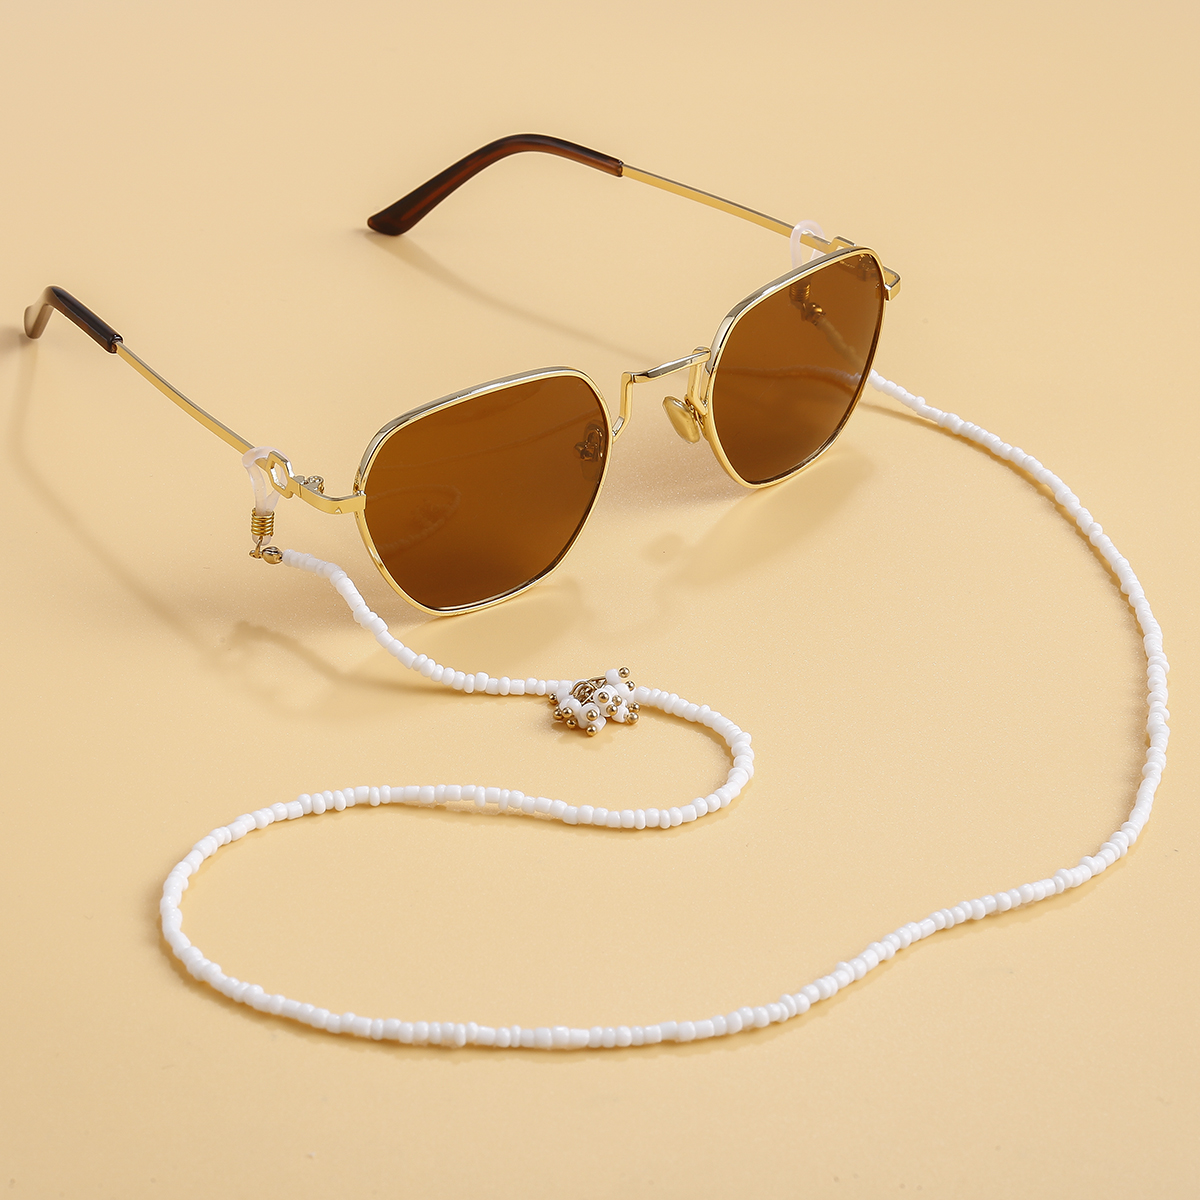 2020 Fashion Reading Glasses Rice Bead Chain Sunglasses Spectacles Holder Cord Lanyard Neck Strap Lanyard Glasses Accessories